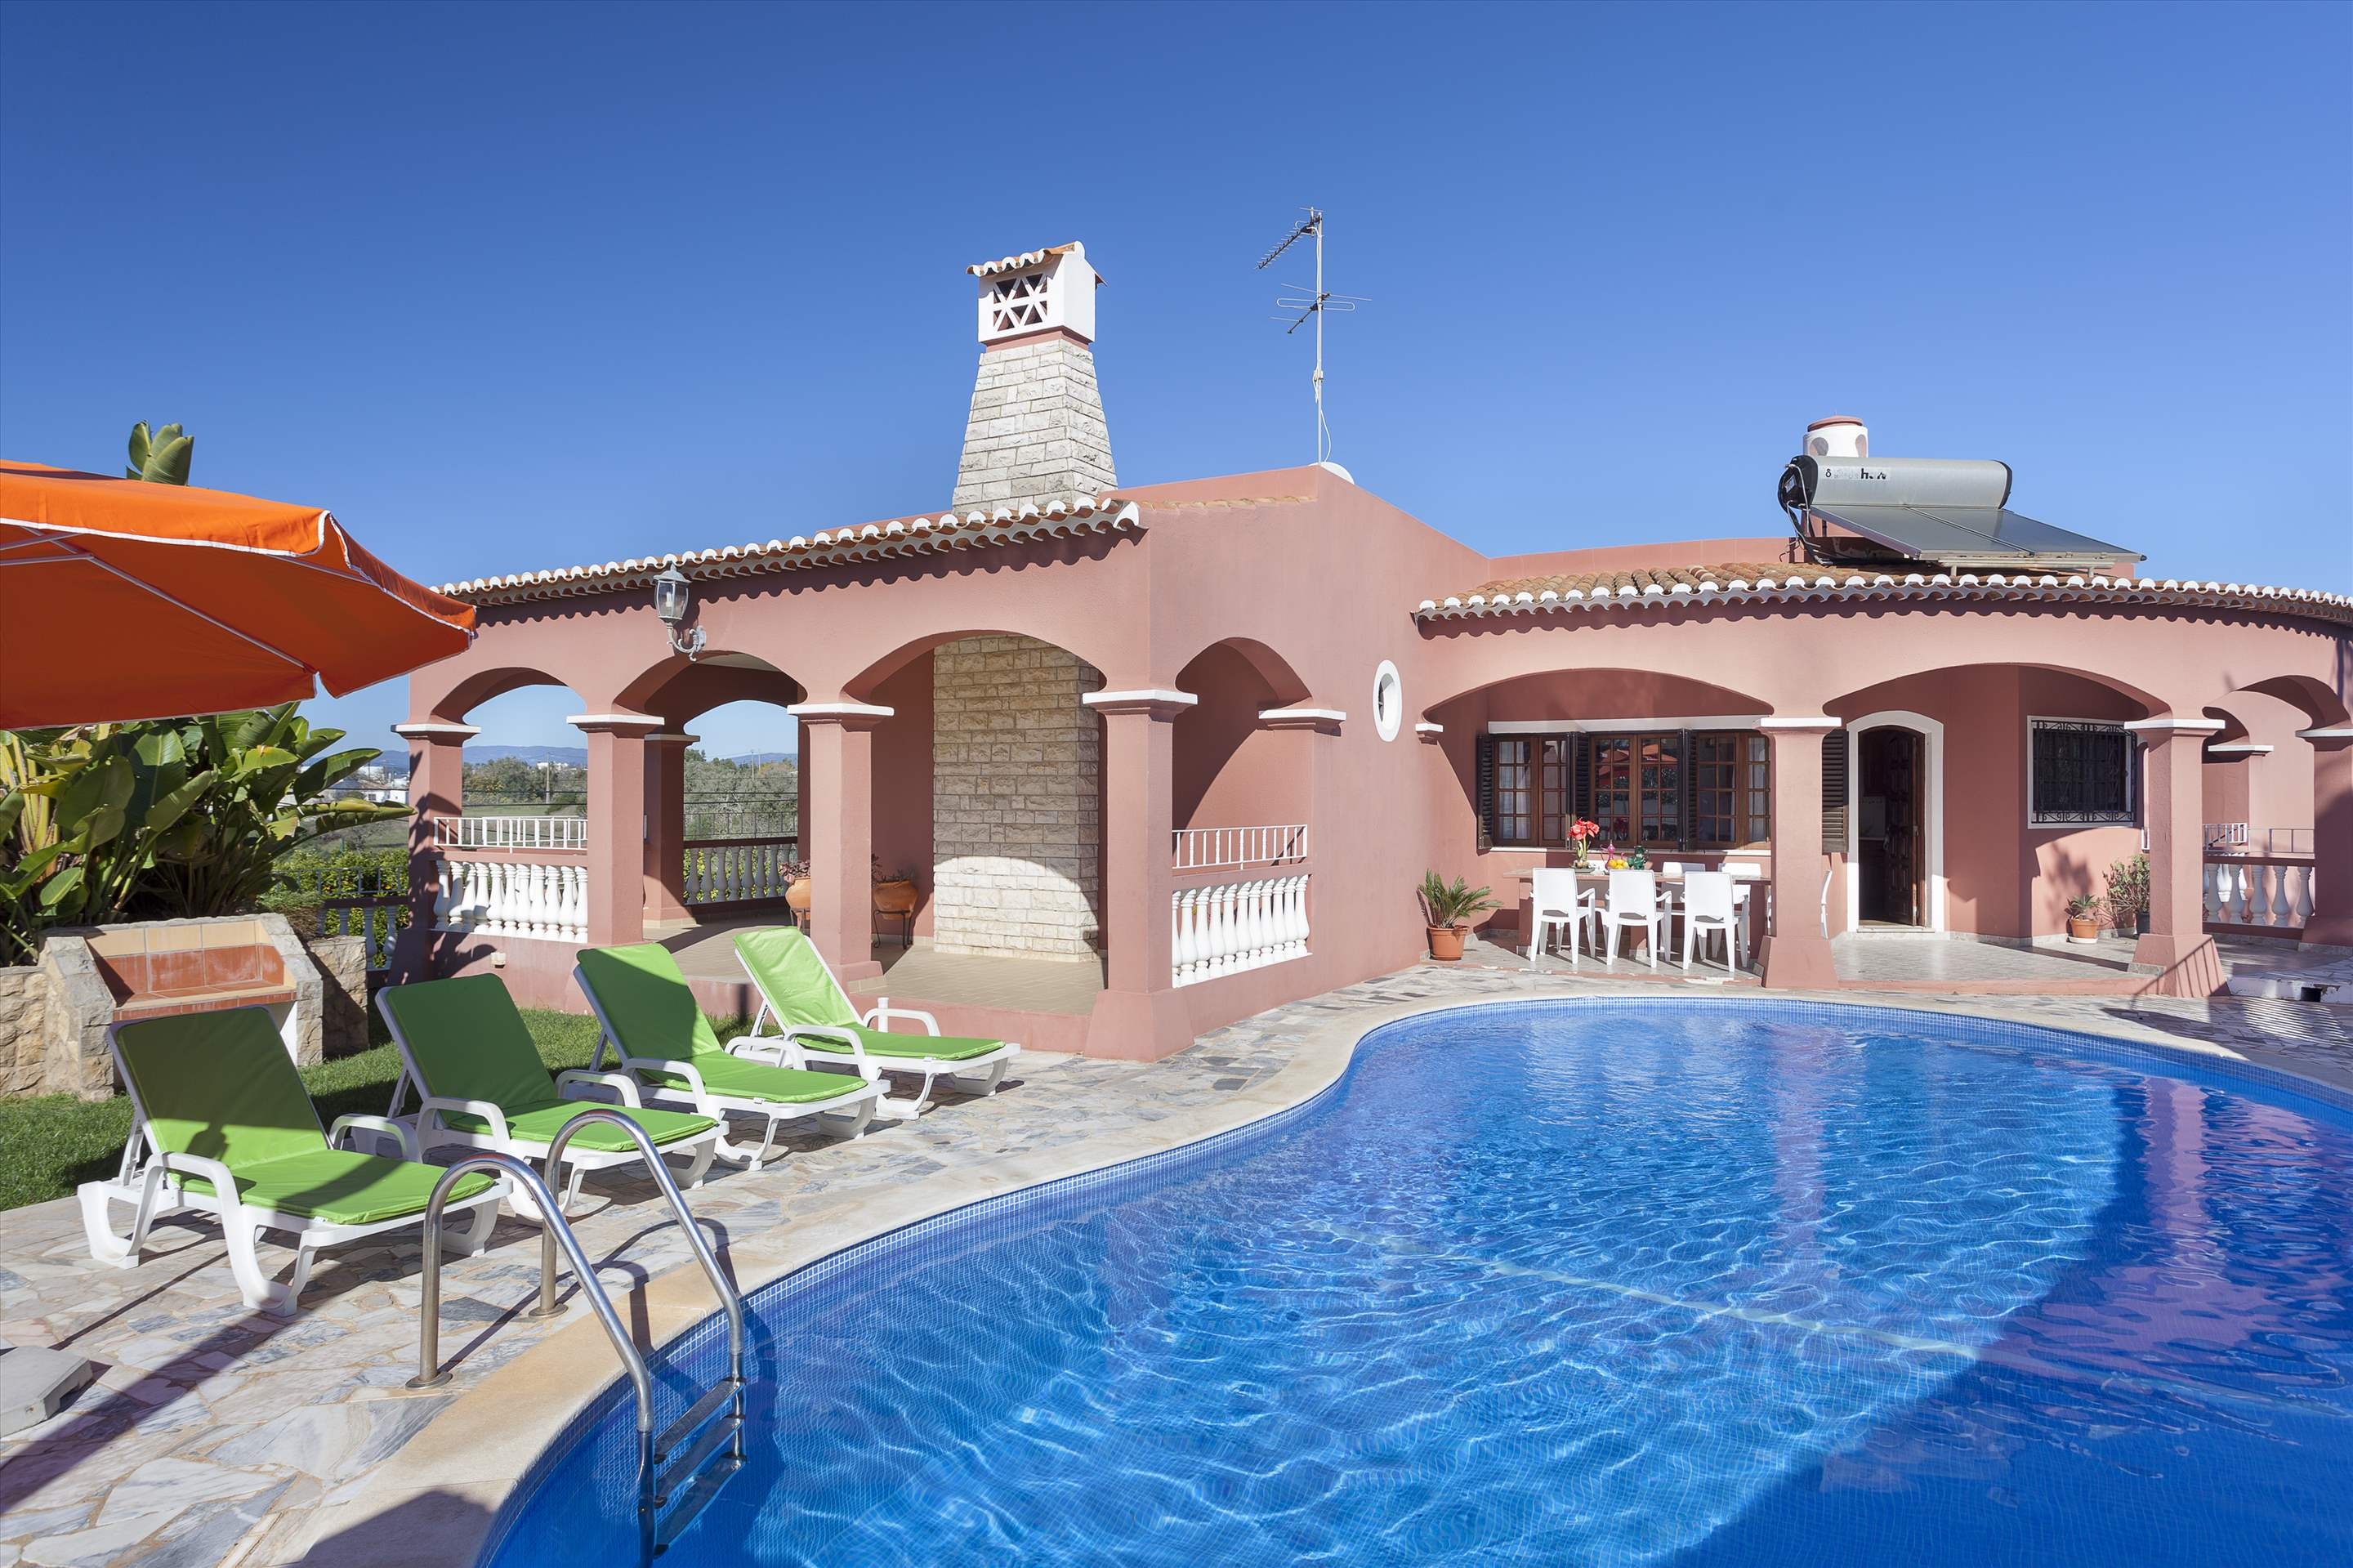 Vivenda Joao Pedro, 4 bedroom villa in Carvoeiro Area, Algarve Photo #1